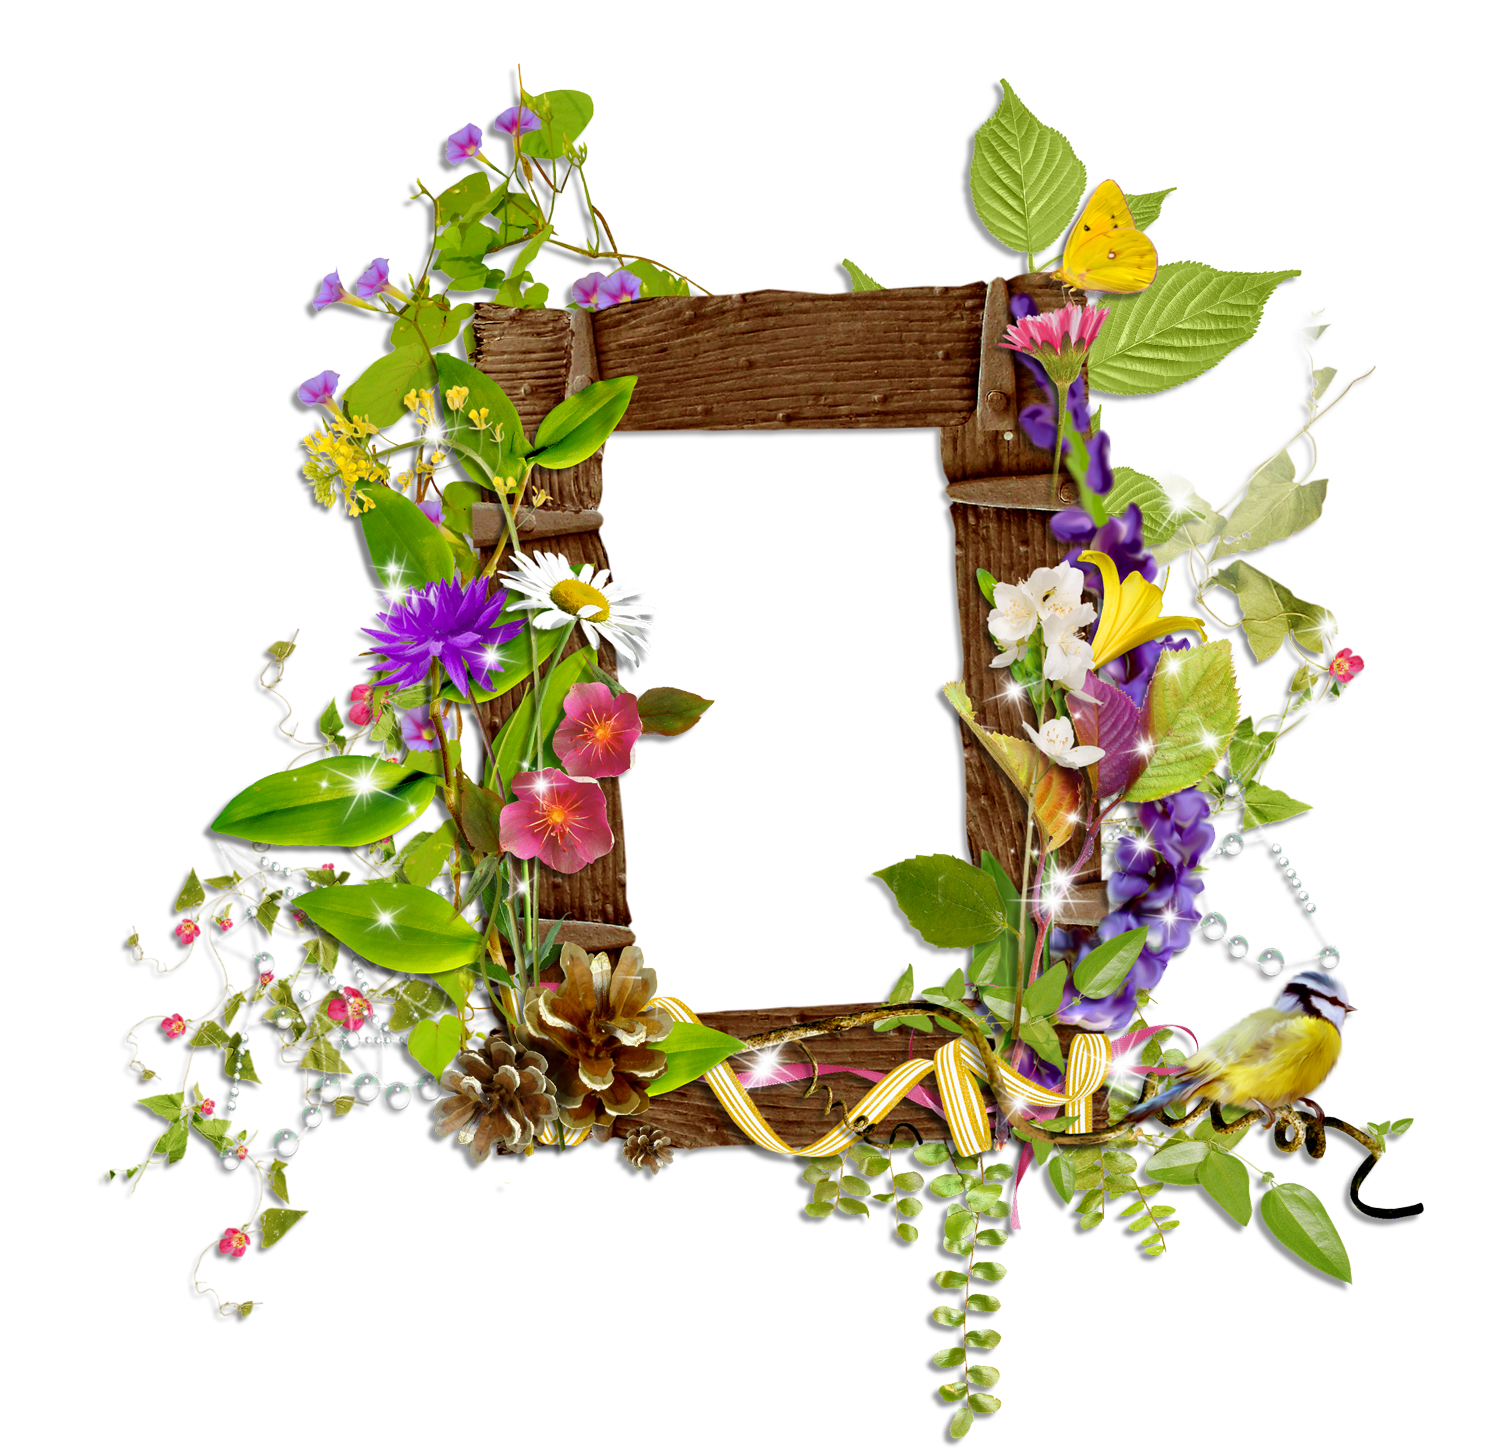 Moon clipart frame. Shining transparent with wild